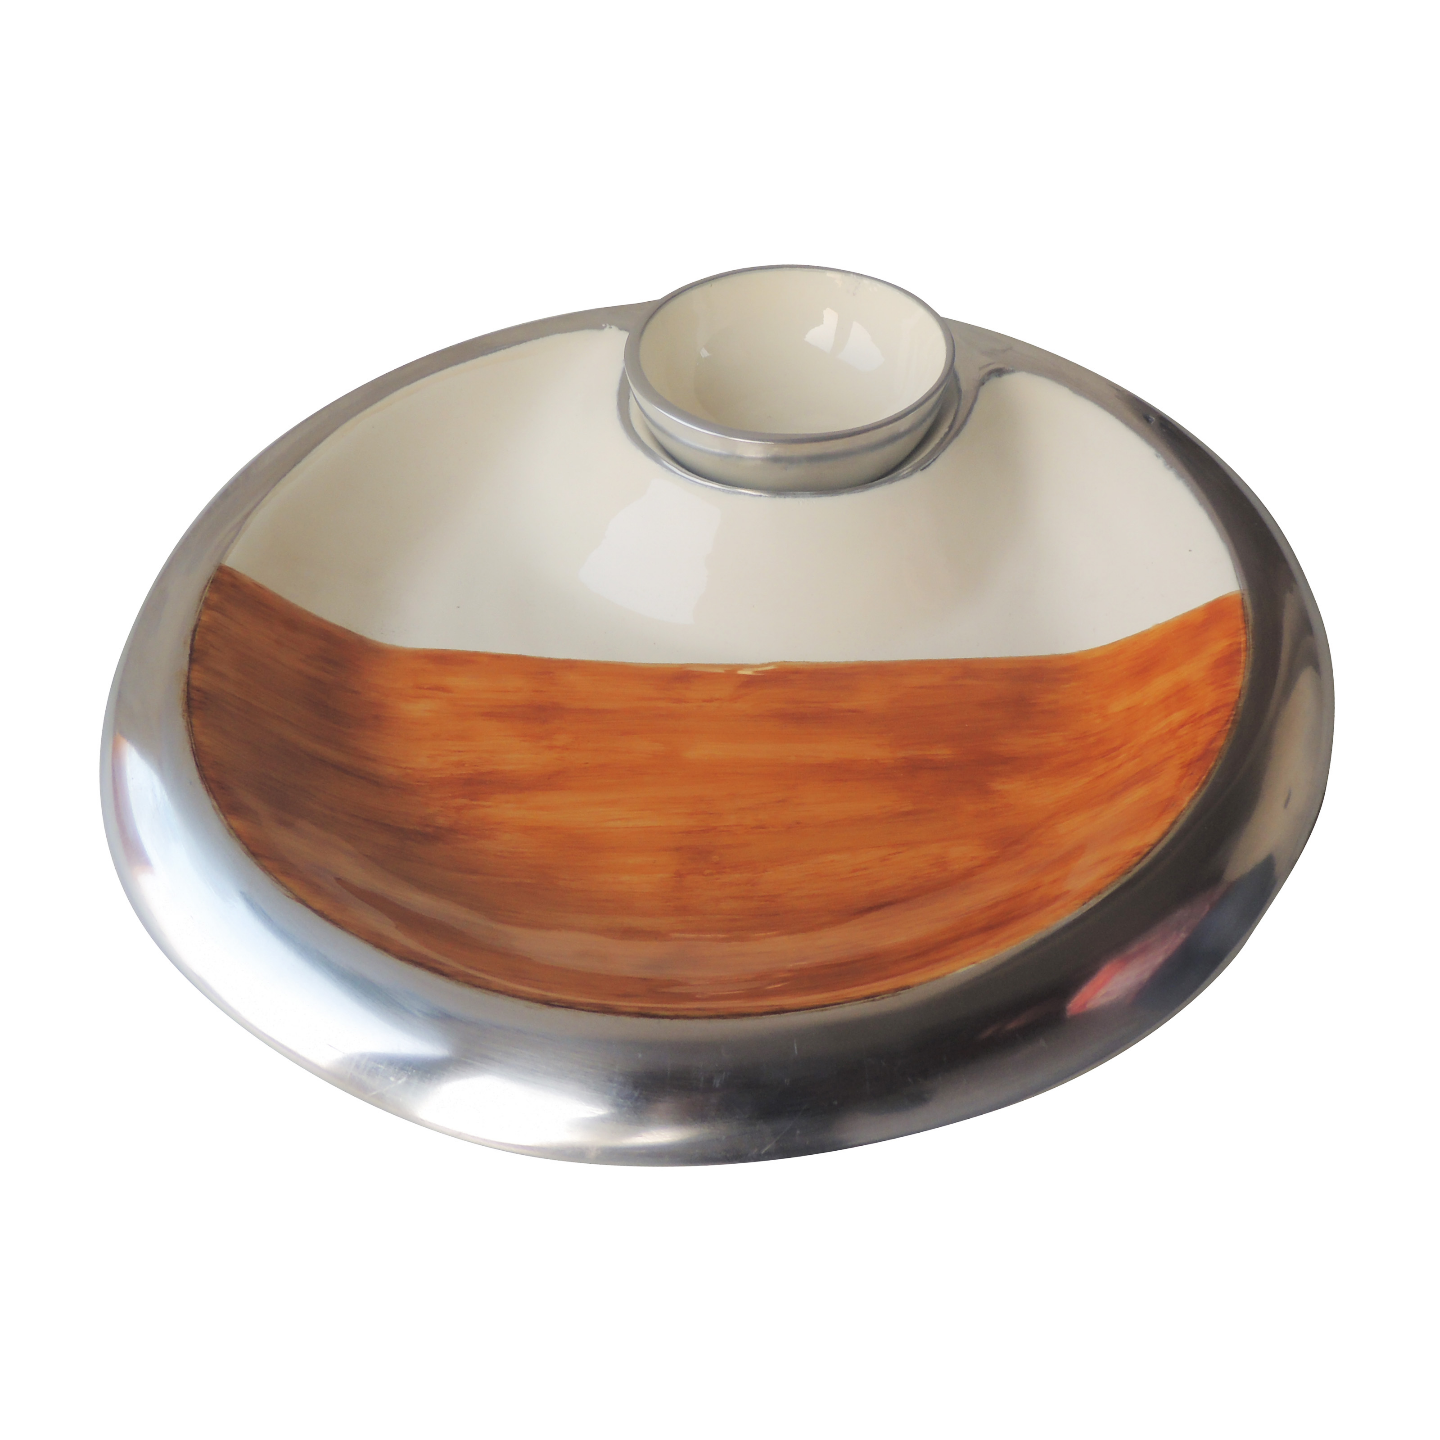 Decorative Platter With Bowl For Diwali Gift 13 Inch - (A3246/13)